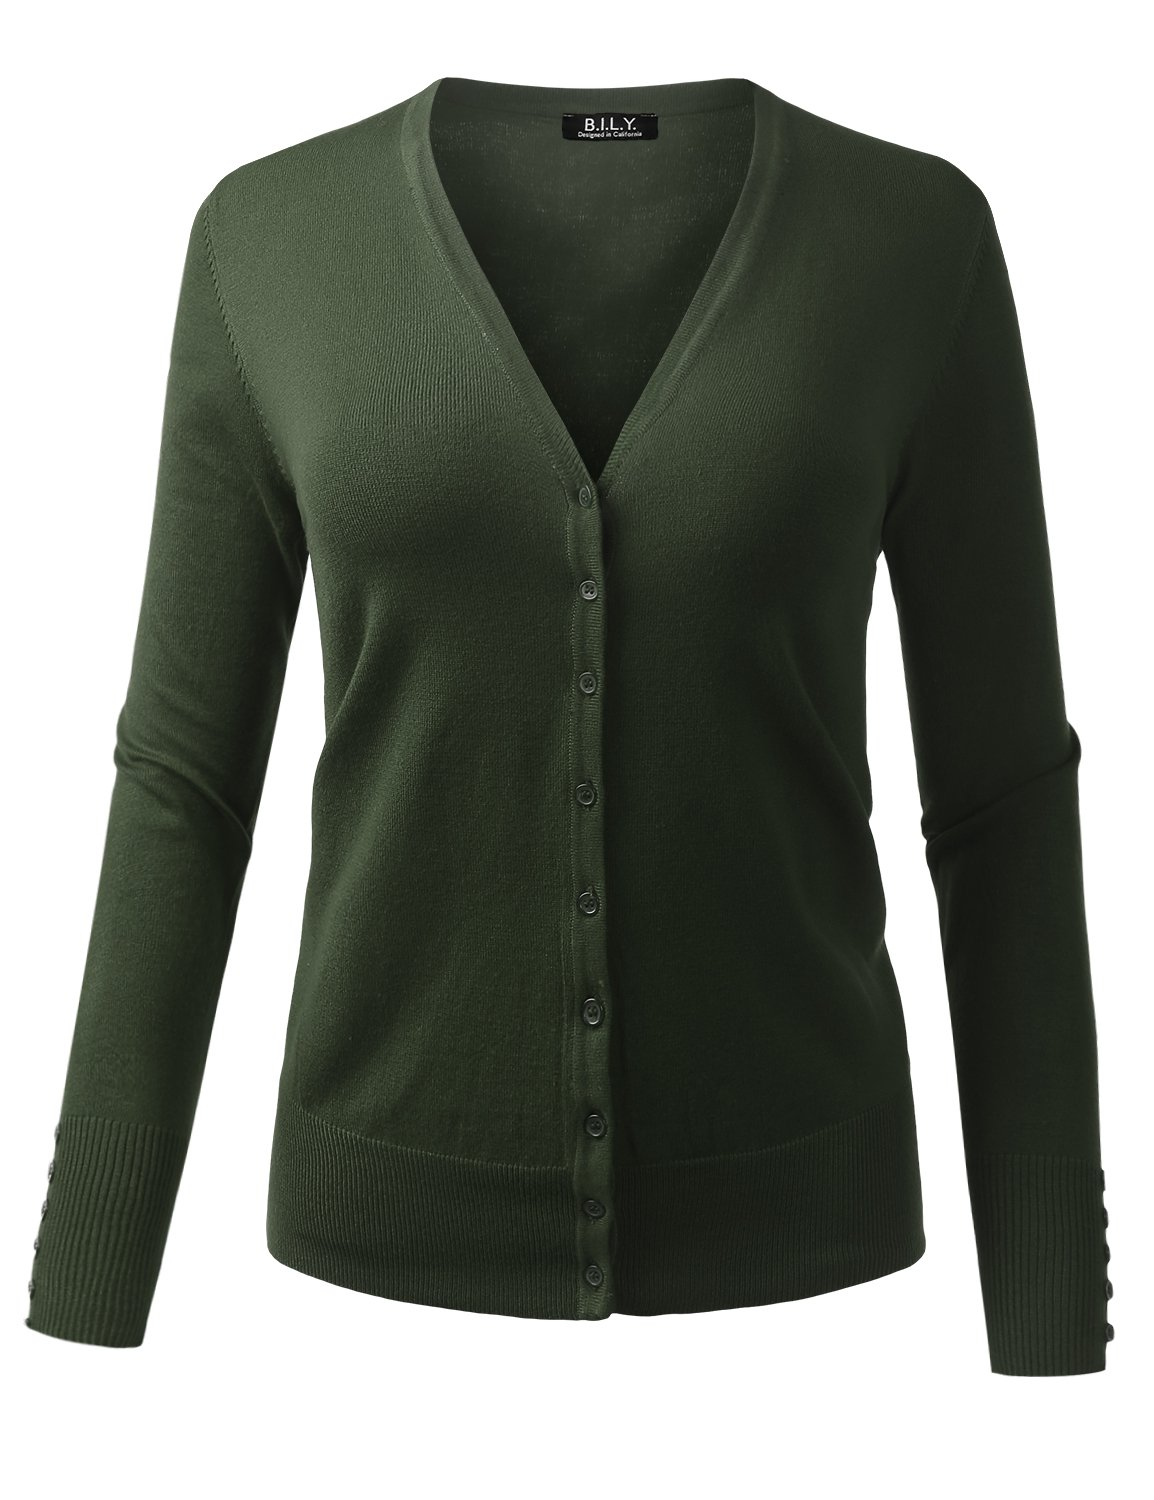 BILY Women's V-Neck Button Down Long Sleeve Classic Knit Cardigan Olive X-Large